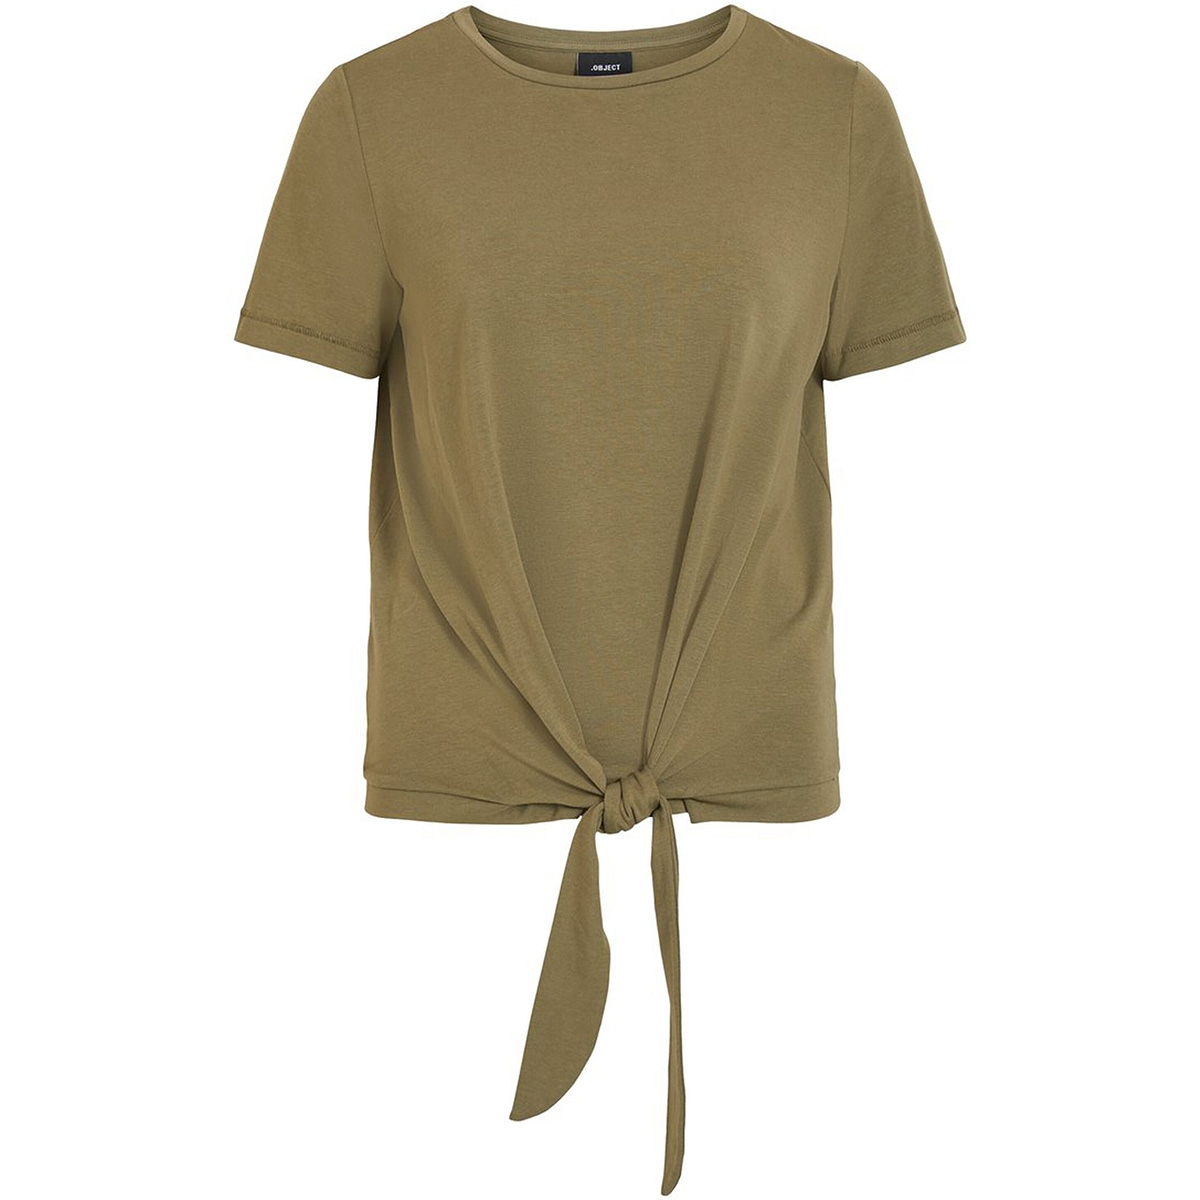 objstephanie maxwell s/s top noos 23029269 object t-shirt burnt olive